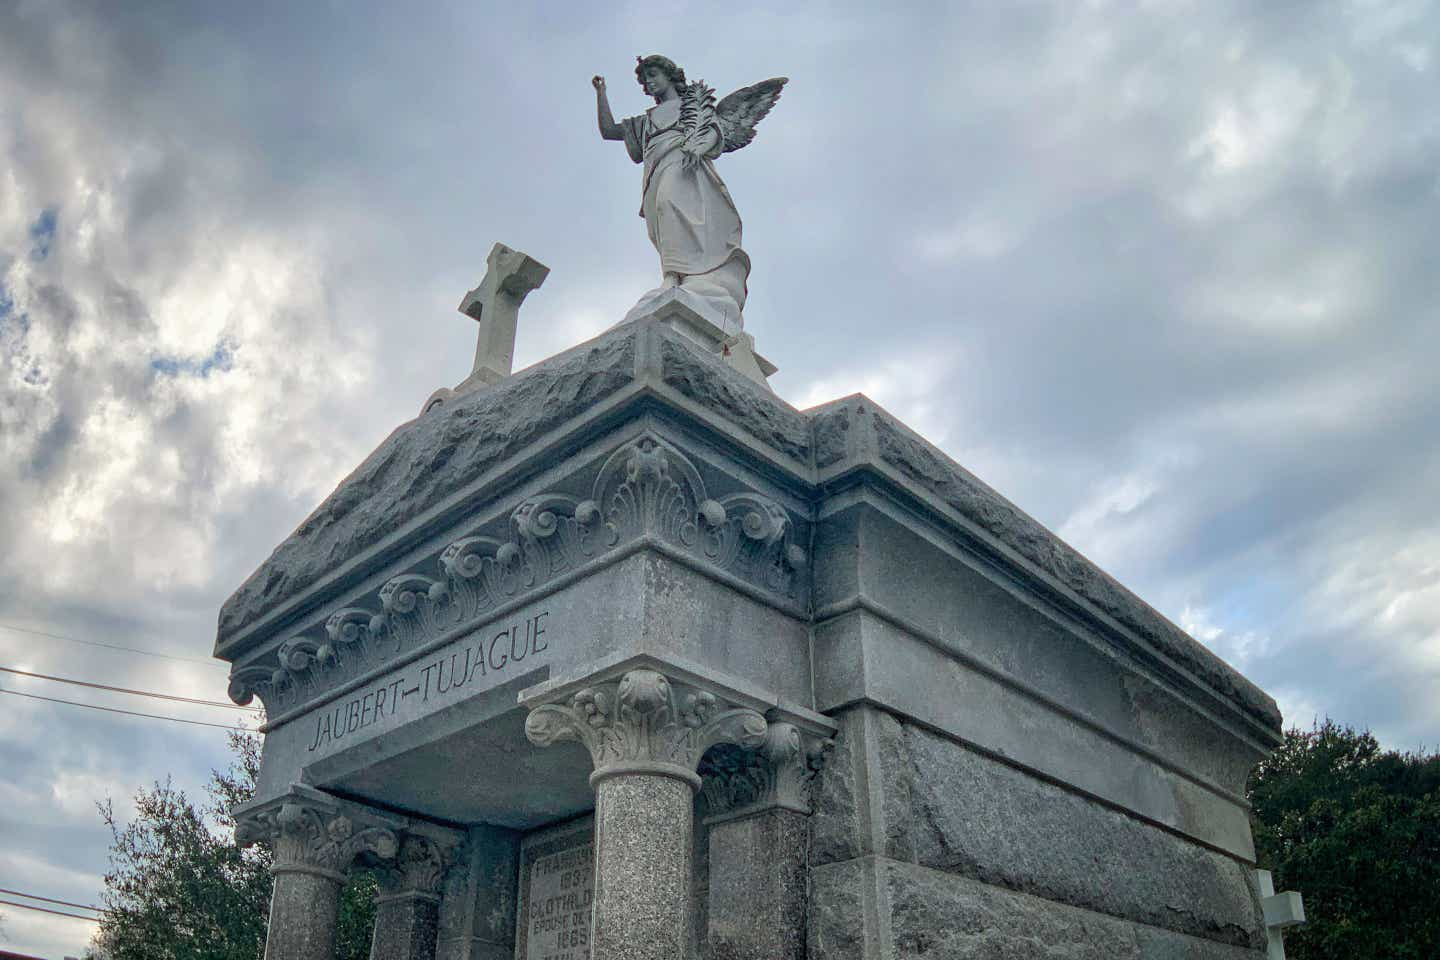 A grey stone mausoleum with a winged angel and cross on top in the St. Louis Cemetery No. 1.